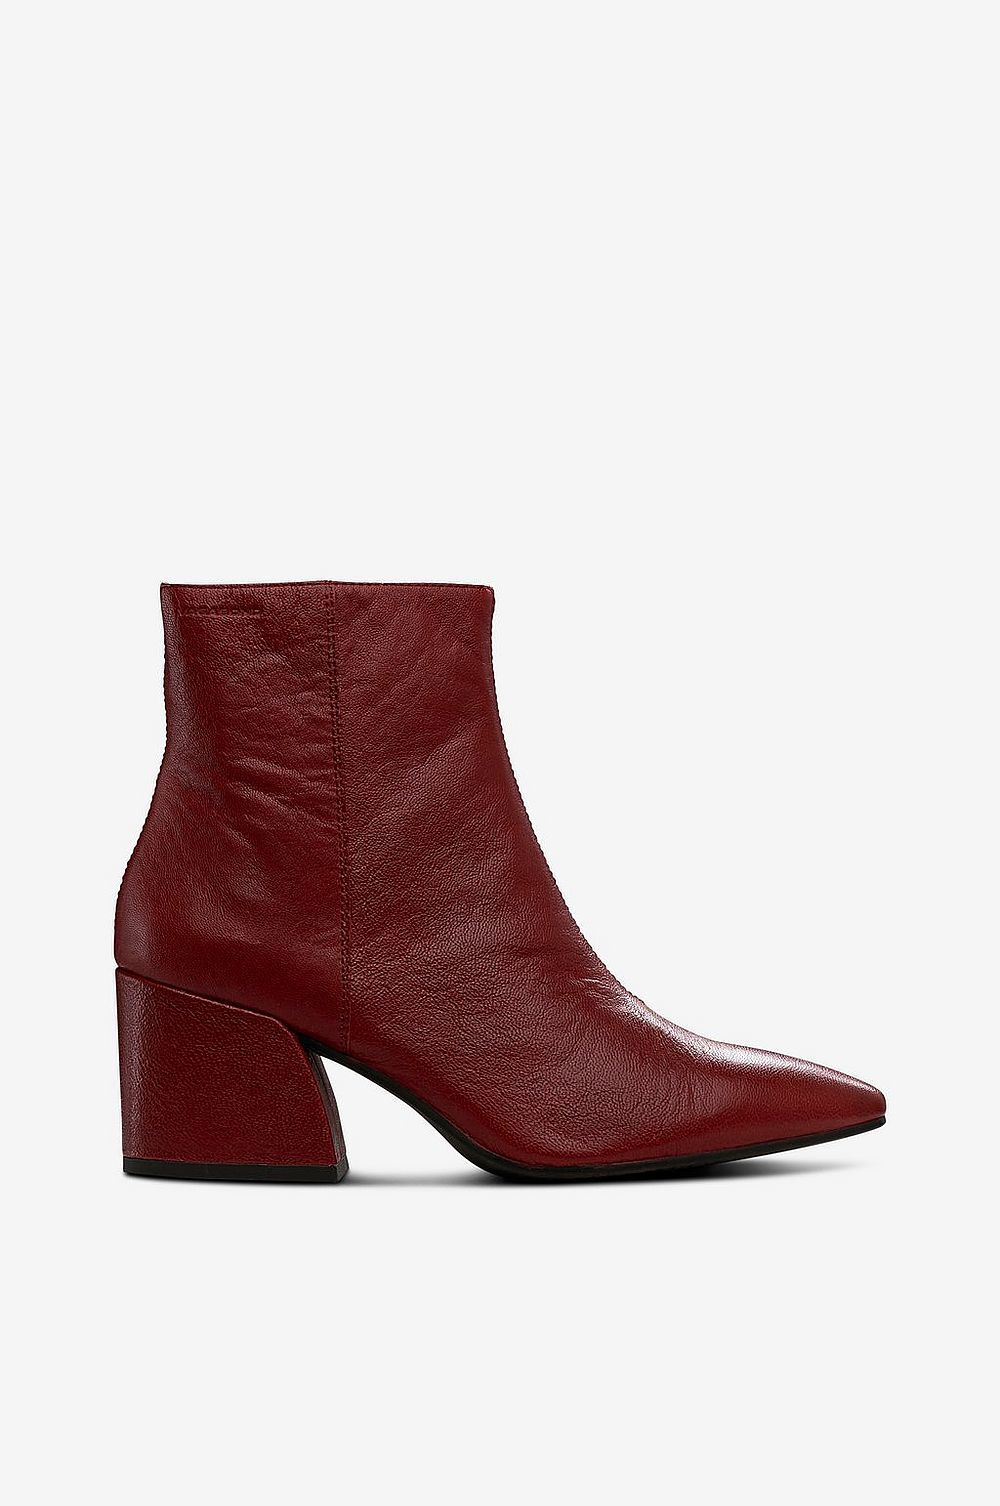 3de856ea154d Boots Olivia | Brown and red shoes | Red shoes, Boots, Shoes